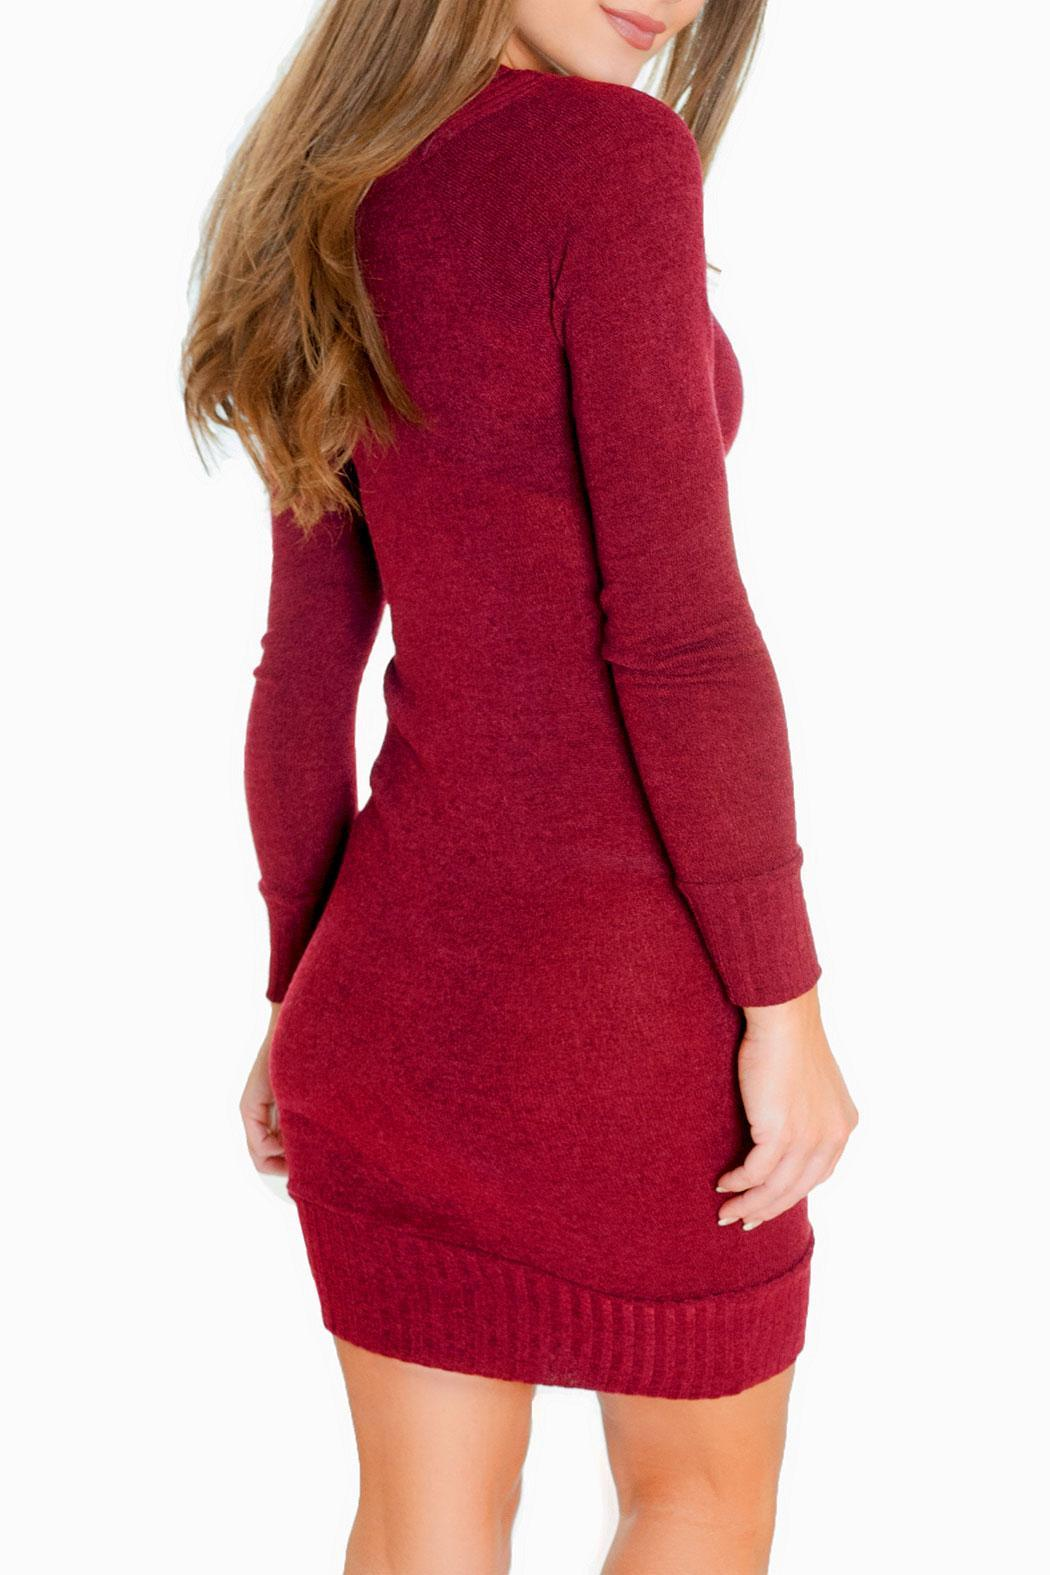 Chynna Dolls Gigi Sweater Dress - Side Cropped Image